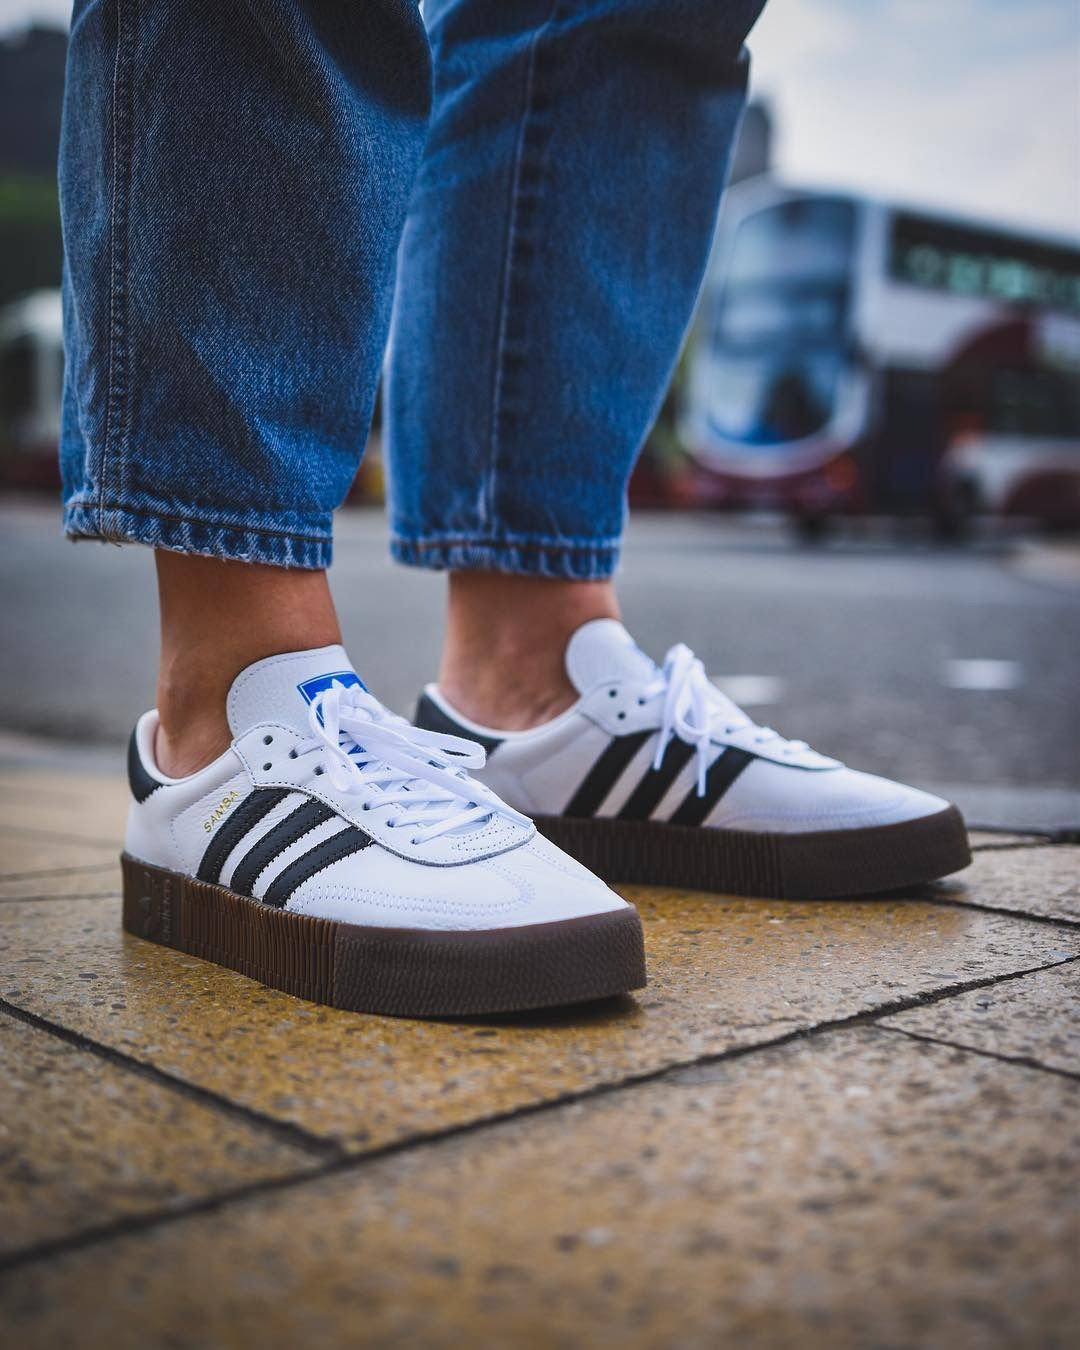 adidas Originals Samba Rose | Samba shoes, Adidas shoes ...